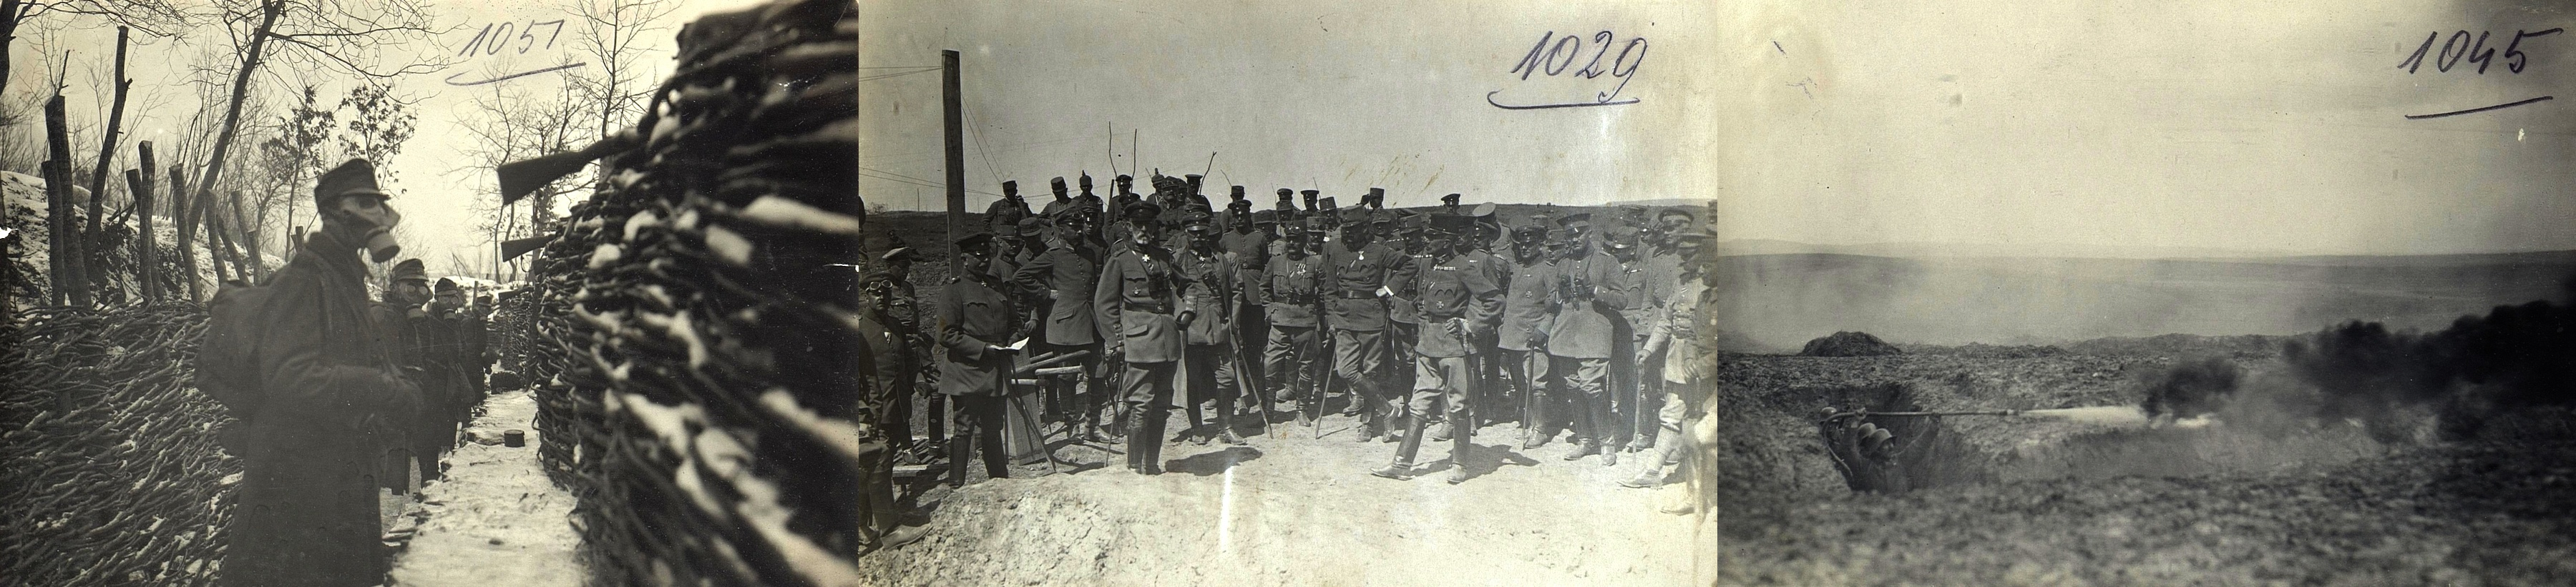 Military training exercises around Rohatyn, 1916